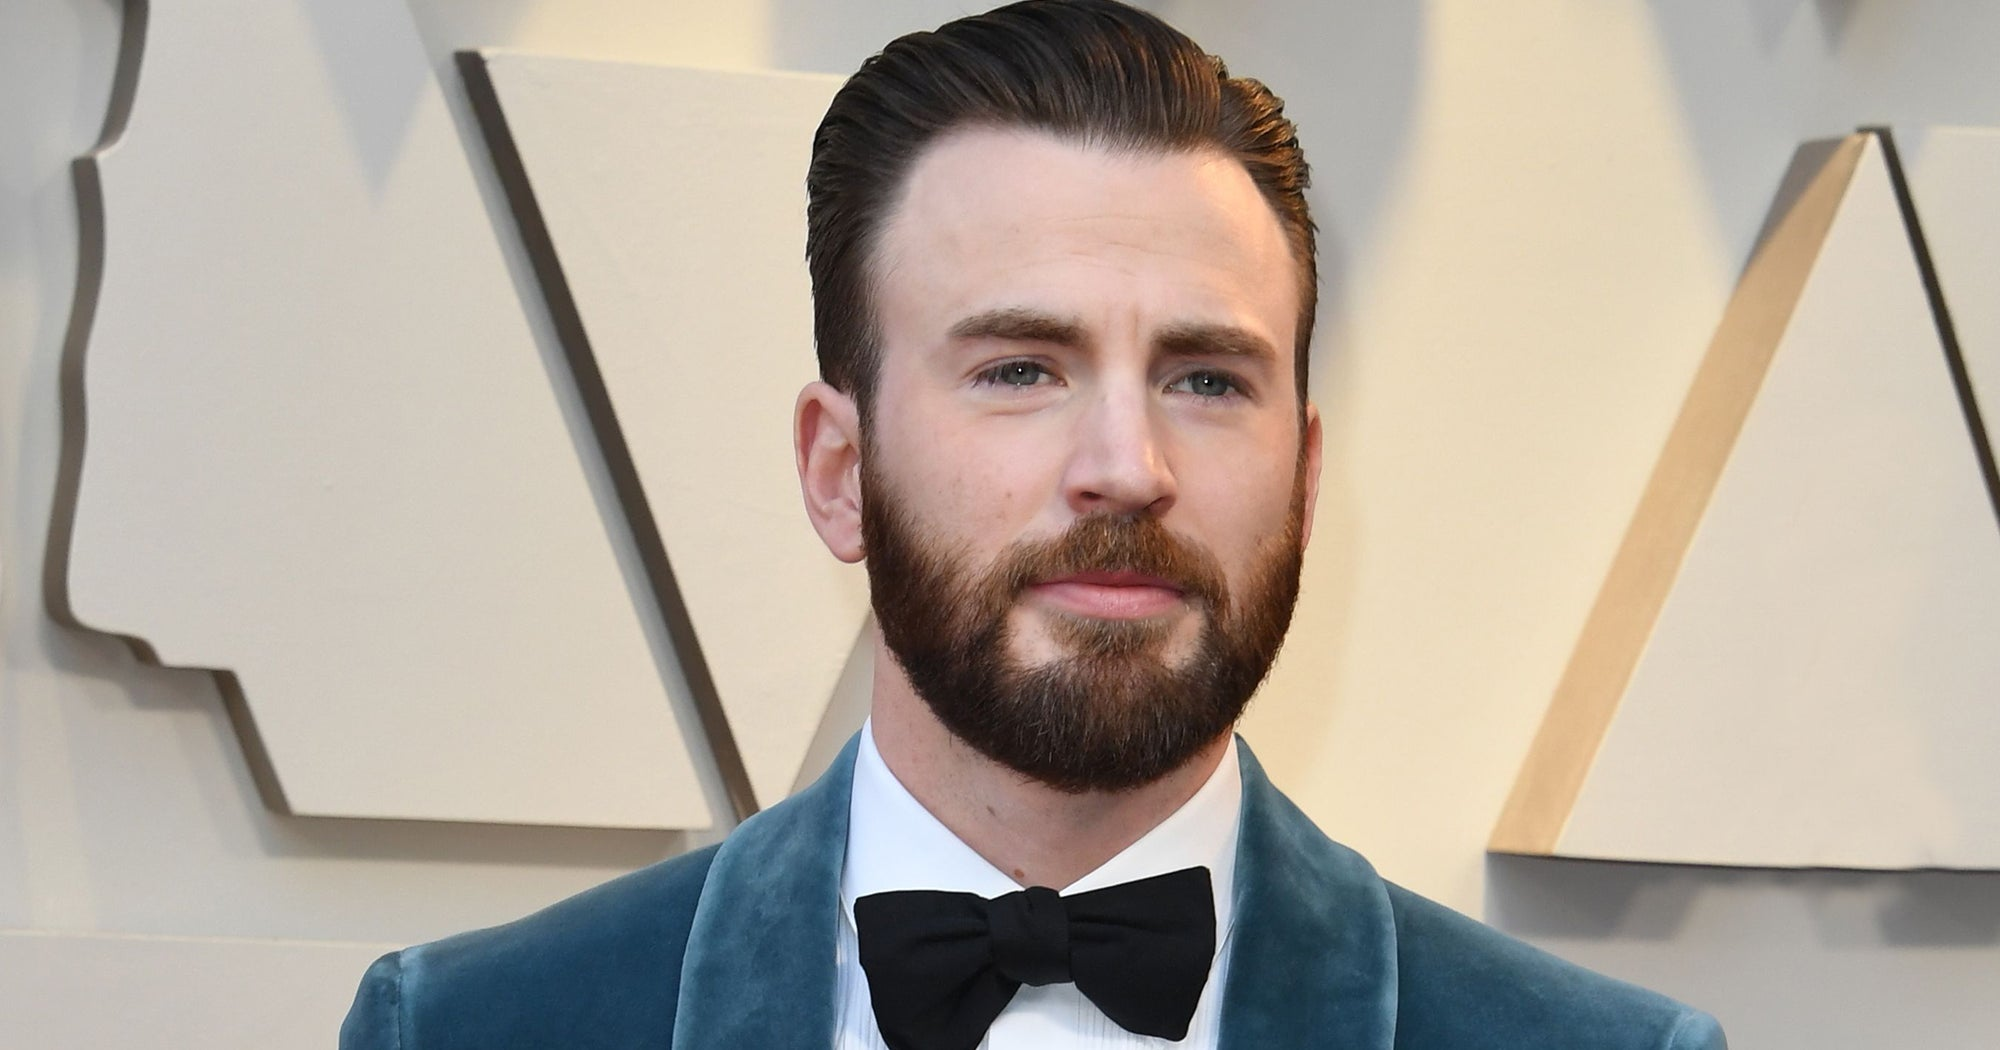 Chris Evans Accidentally Shared A NSFW Pic With The Entire World